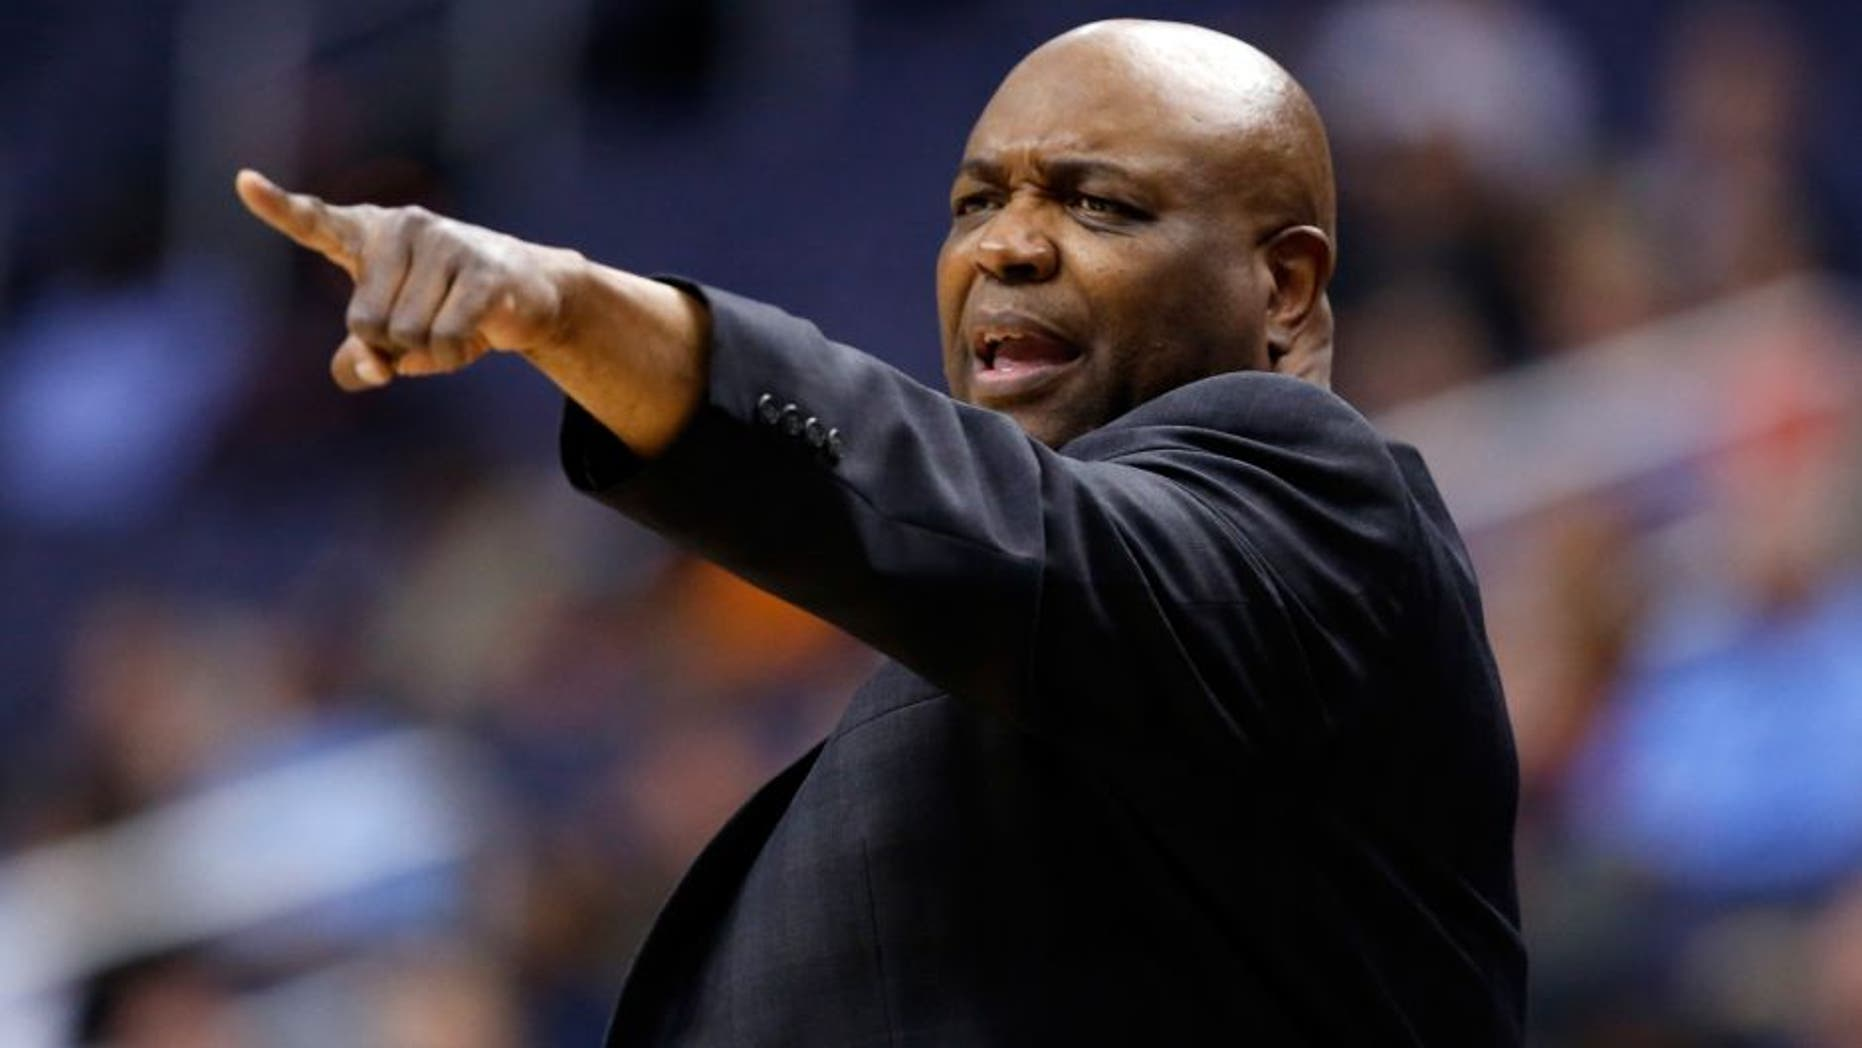 FILE- In this March 8, 2016 file photo, Florida State head coach Leonard Hamilton reacts during the second half of an NCAA college basketball game in the Atlantic Coast Conference tournament against Boston College in Washington. After having a mostly inexperienced squad last season, Hamilton has been happy with how Florida State has done during the offseason as it prepares for next season. (AP Photo/Alex Brandon, File)